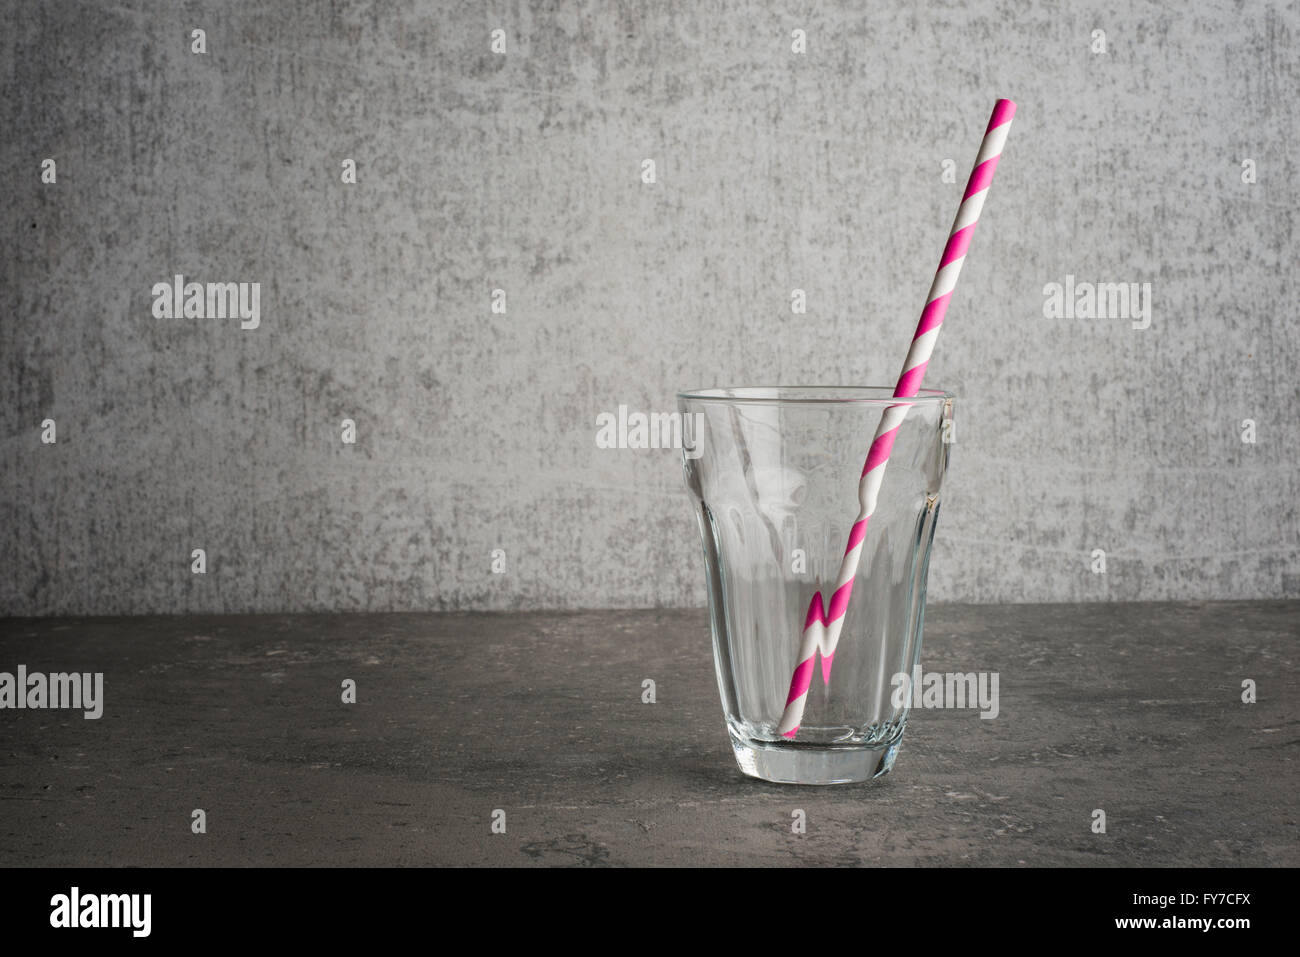 Empty glass with drinking straw studio still life The straw is striped  the glass is st ing on a stone table Copy - Stock Image